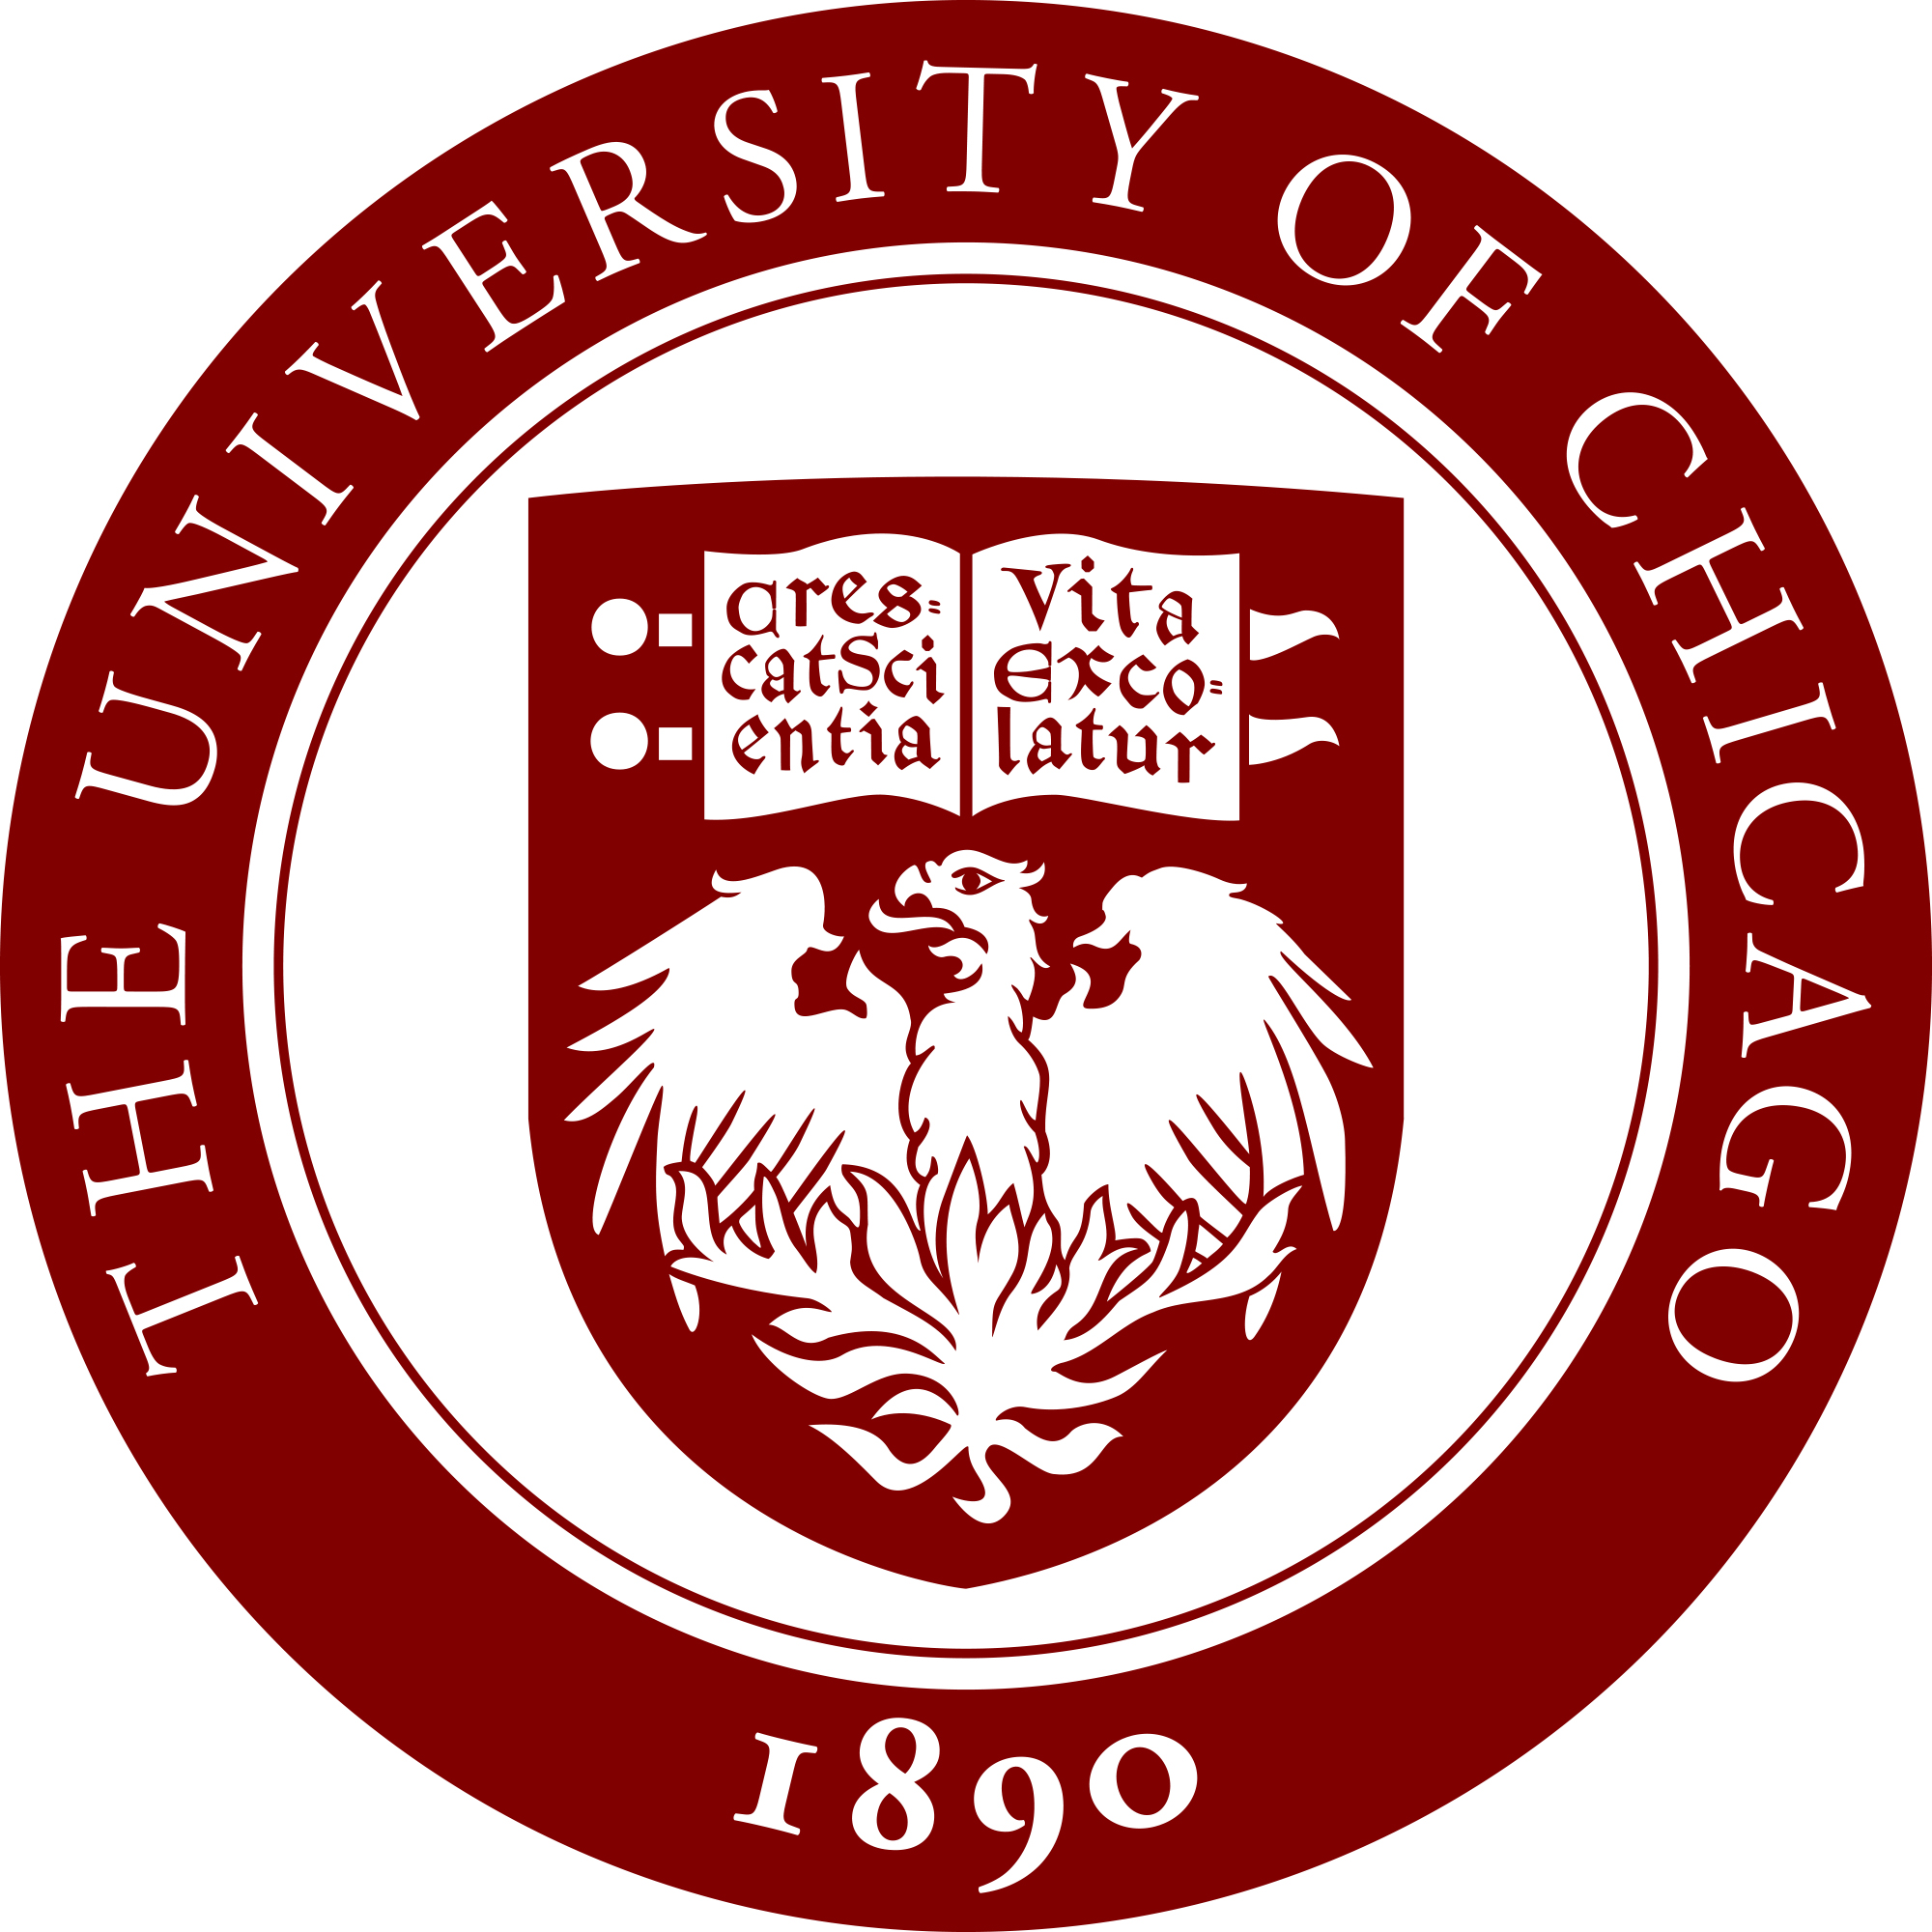 The University of Chicago Office of Investments profile image